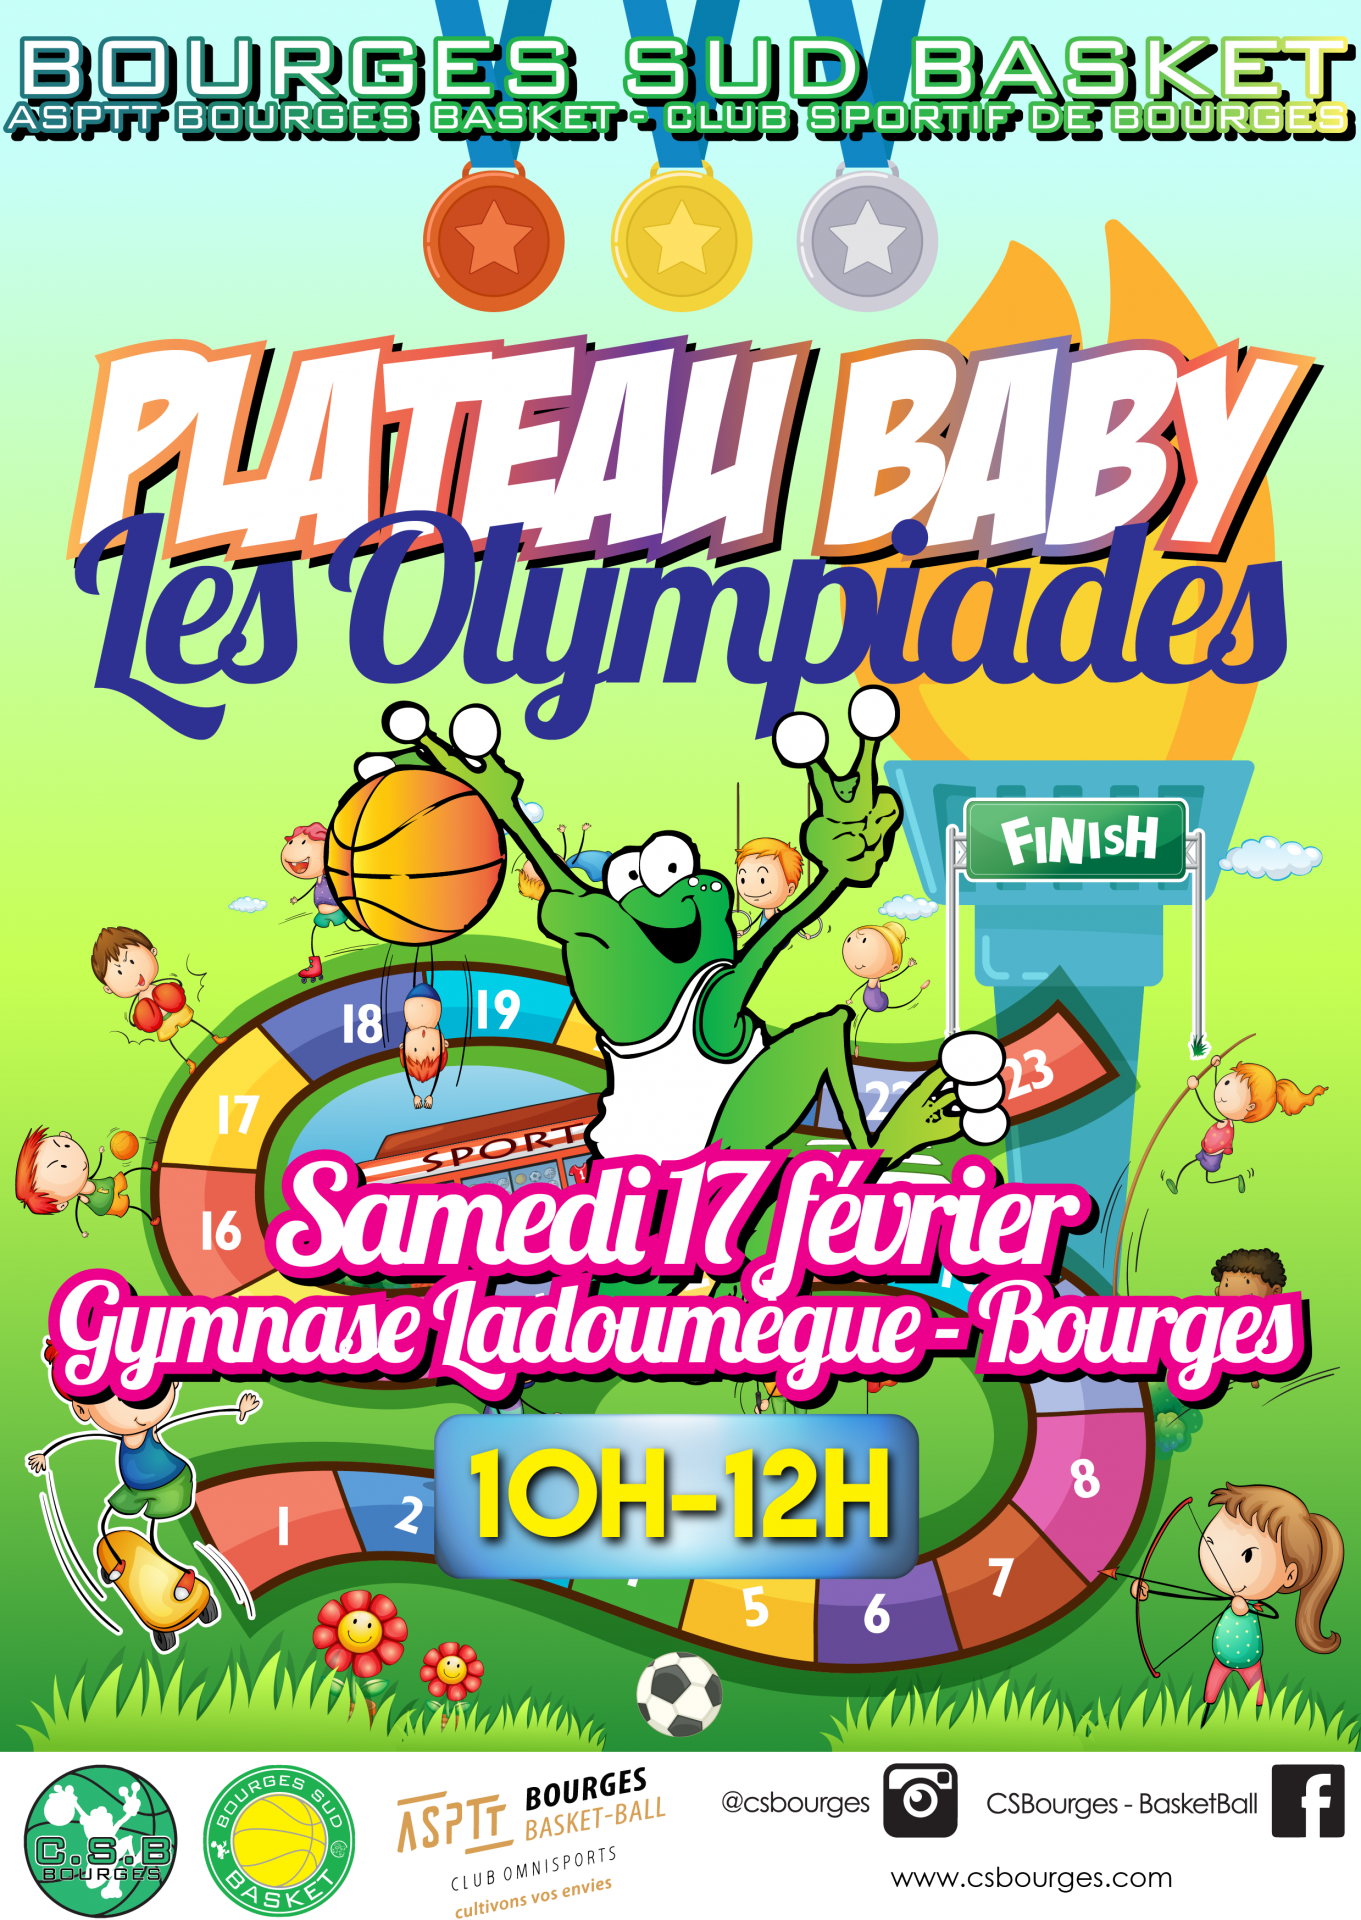 Plateau baby 2017 les olympiades